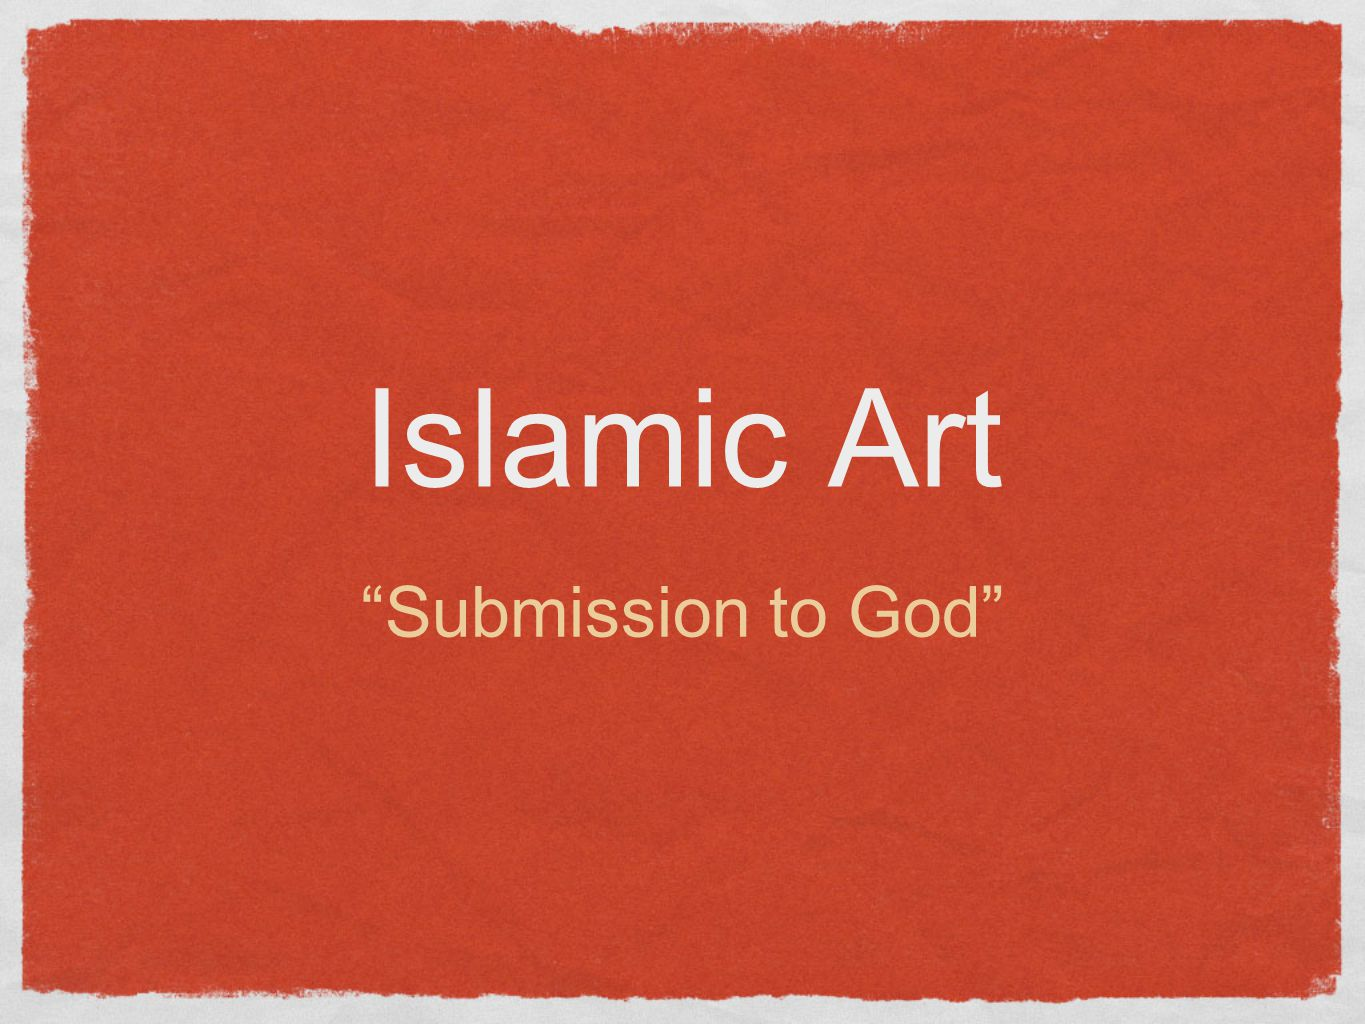 Islamic Art Submission to God